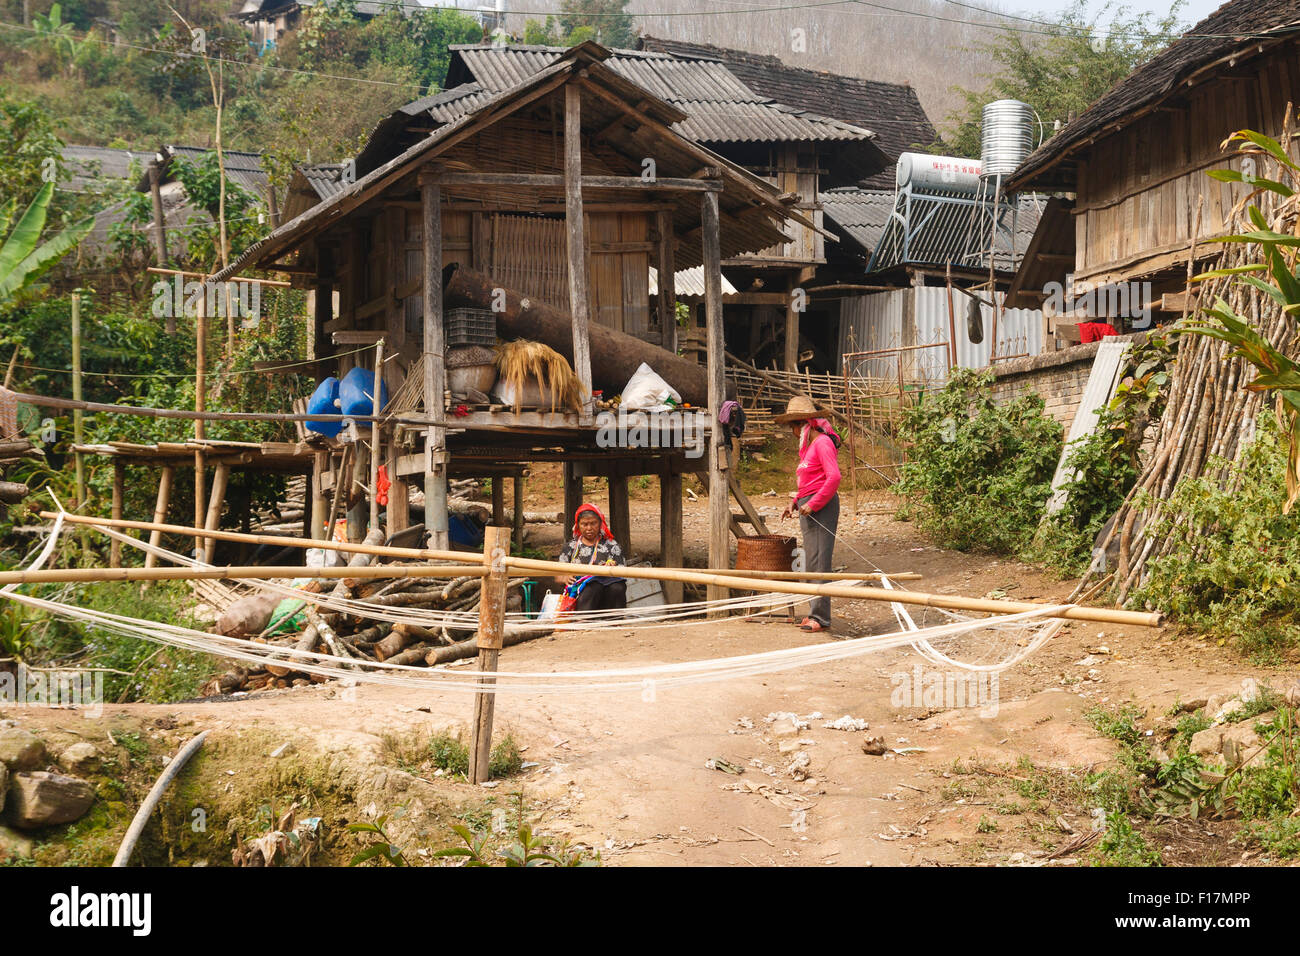 Rural village in Xishuangbanna, Yunnan, China, where women are weaving and spinning in traditional fashion - Stock Image